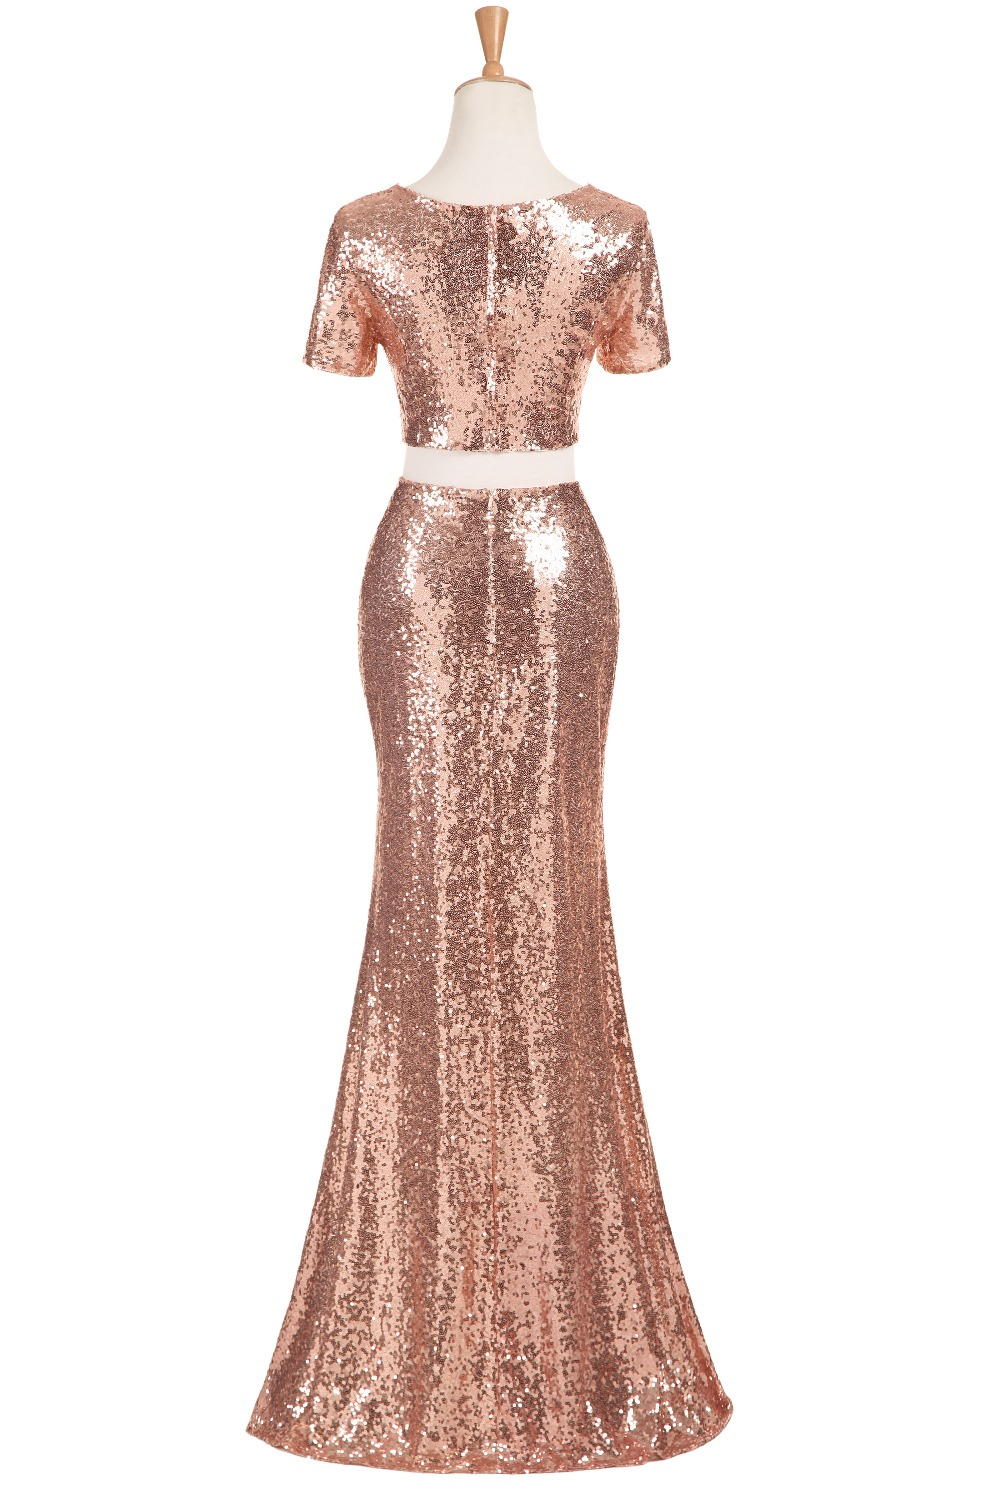 Rose gold bridesmaid dresses long sequins robe de demoiselles d rose gold bridesmaid dresses long sequins robe de demoiselles d honneur pour mariage 2017 high quality wedding party dresses in bridesmaid dresses from ombrellifo Image collections